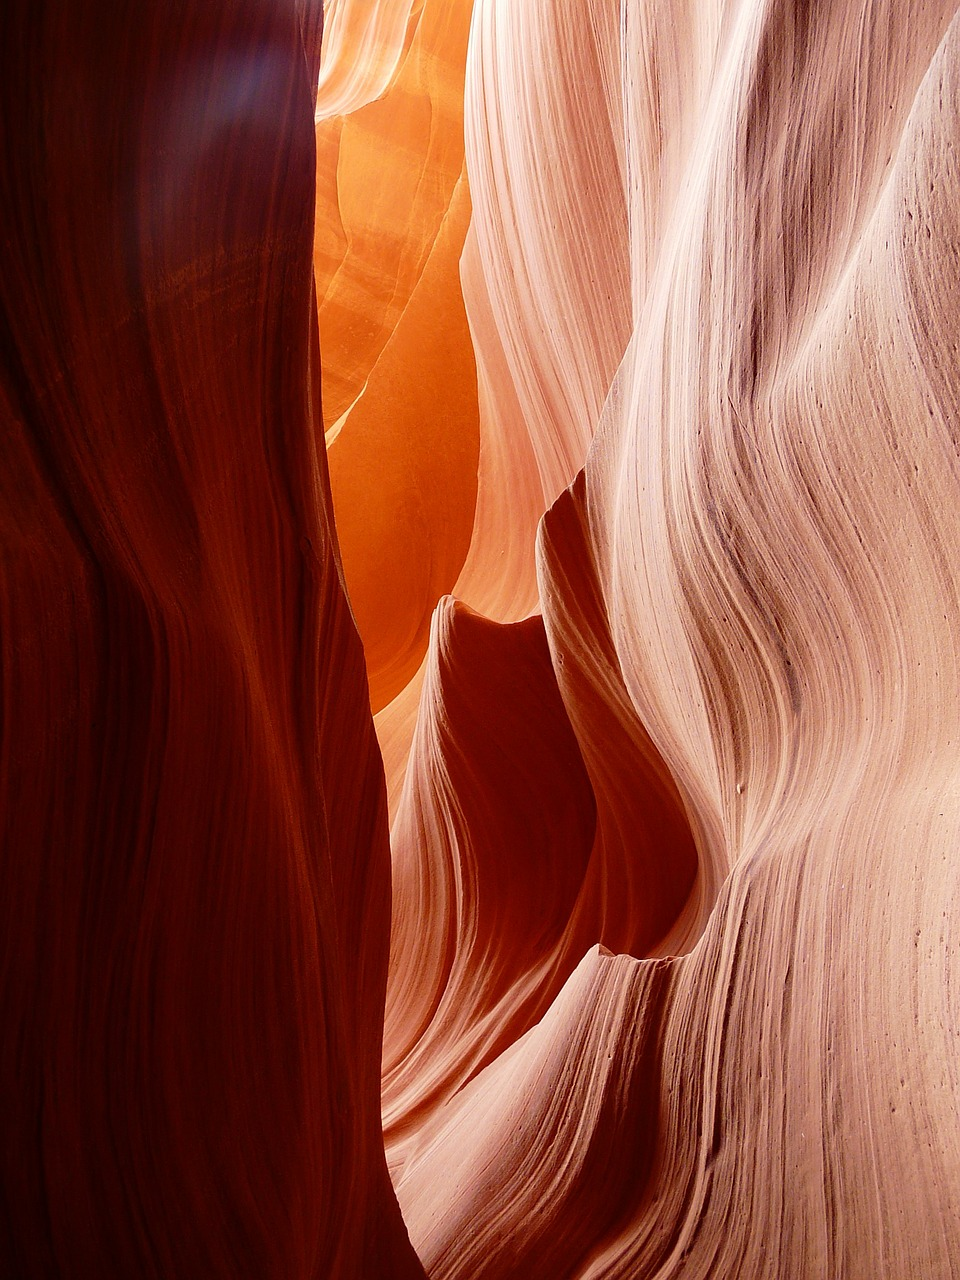 antelope canyon page sand stone free photo